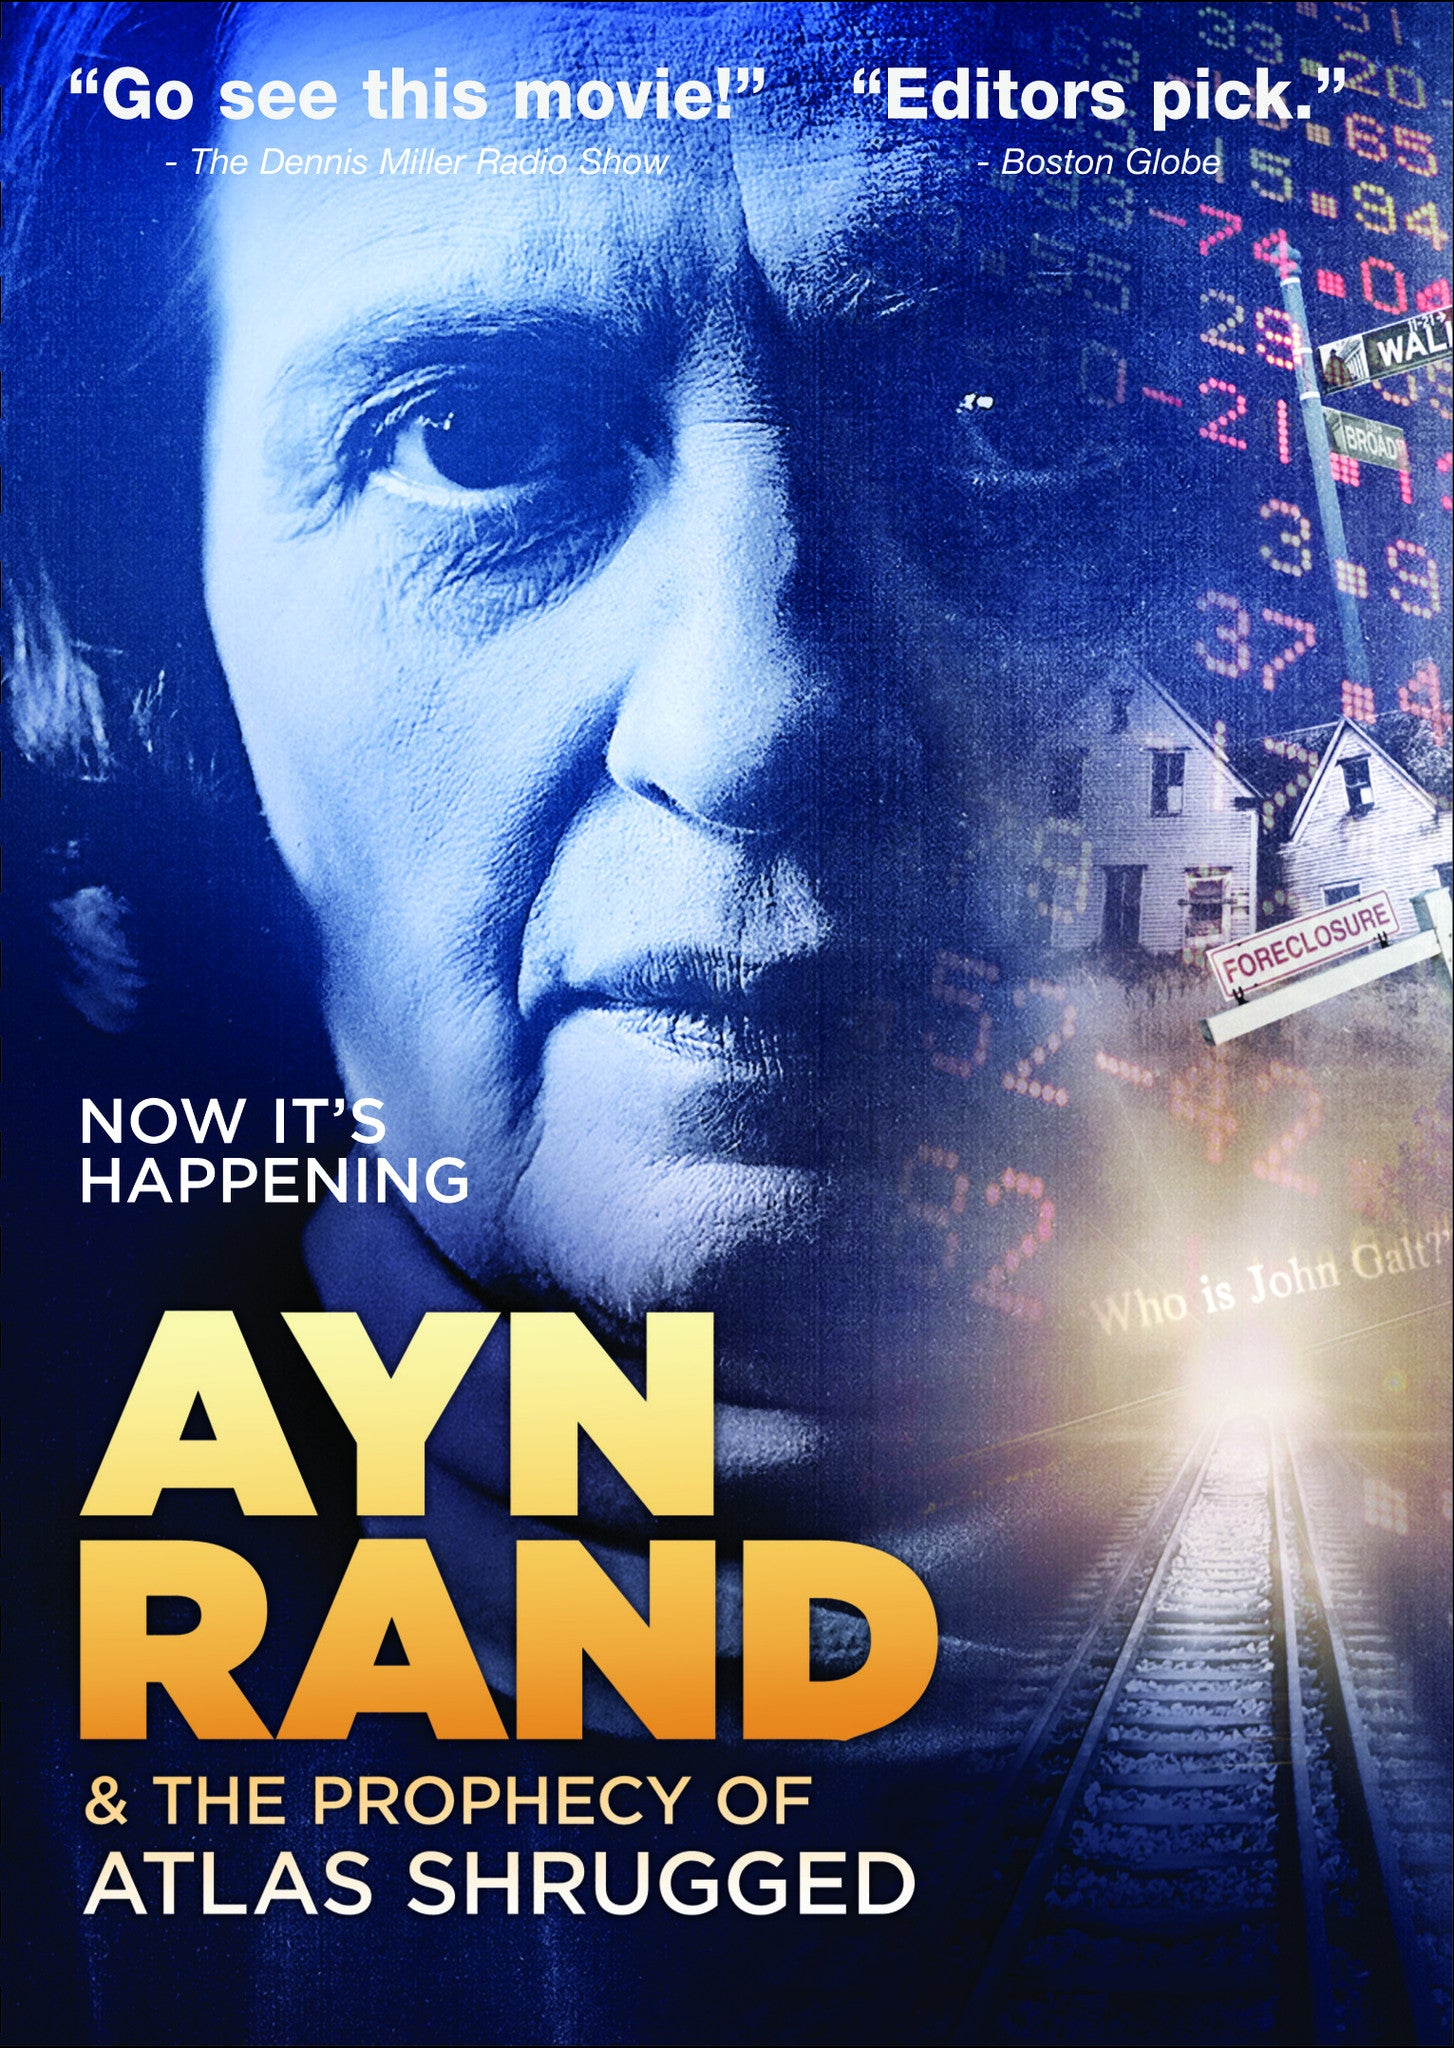 Ayn Rand and the Prophecy of Atlas Shrugged - Atlasphere